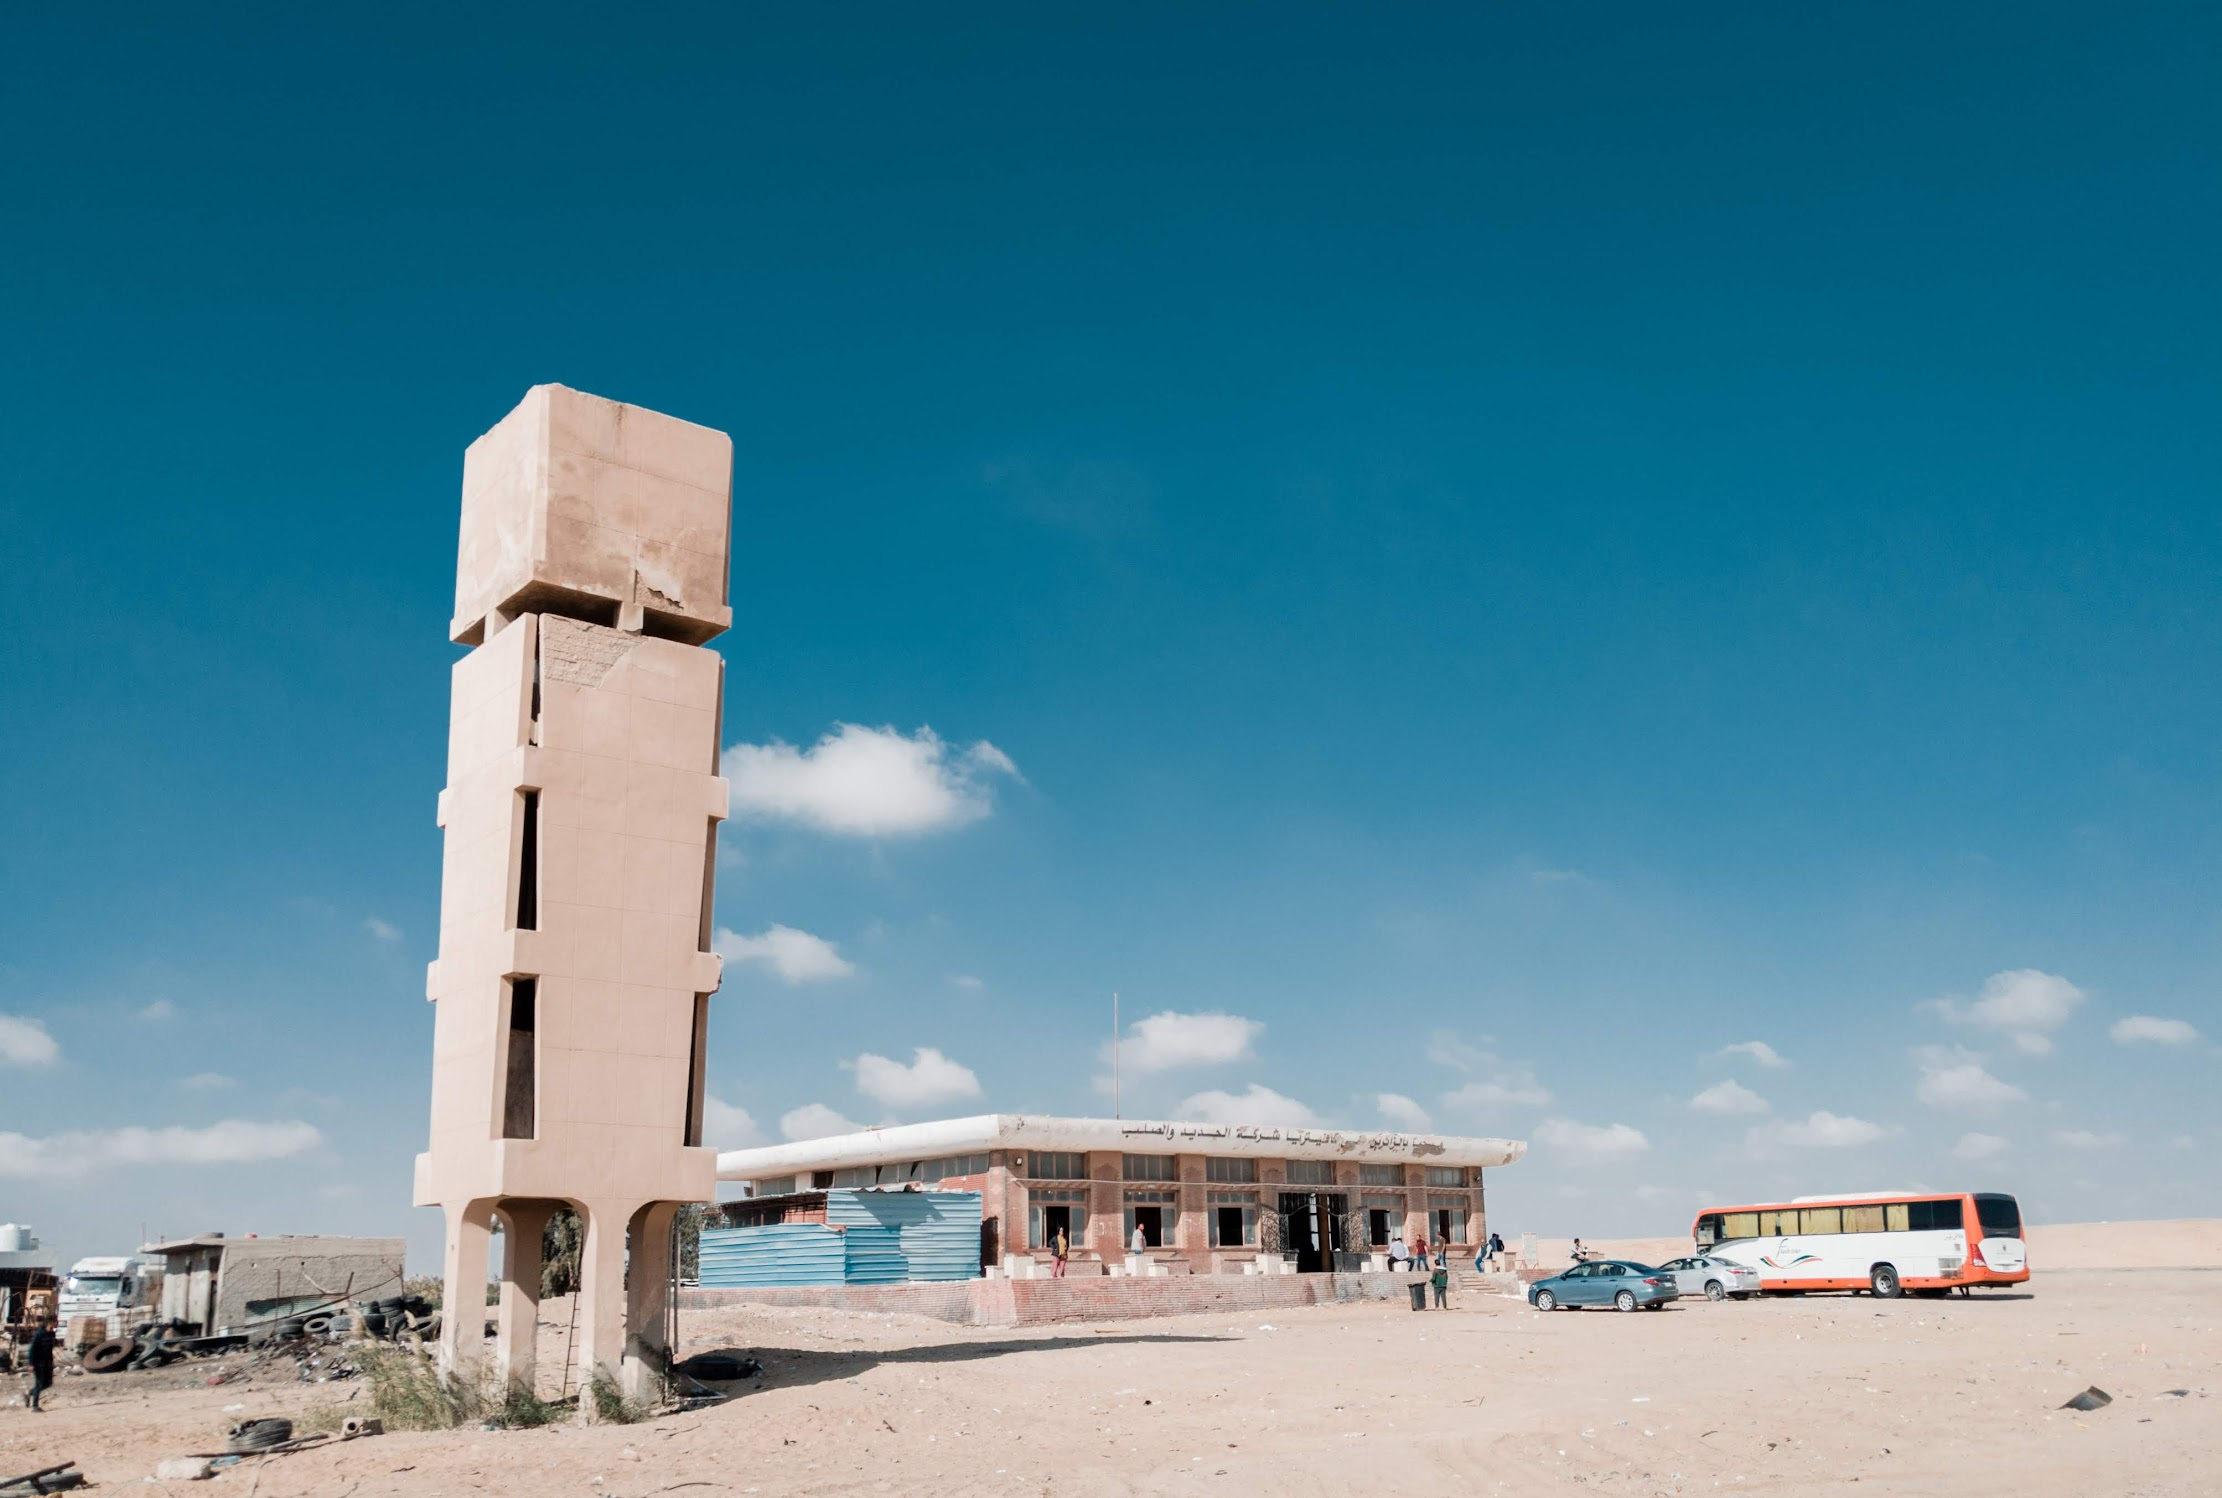 A rest stop on the way to Bahariya Oasis